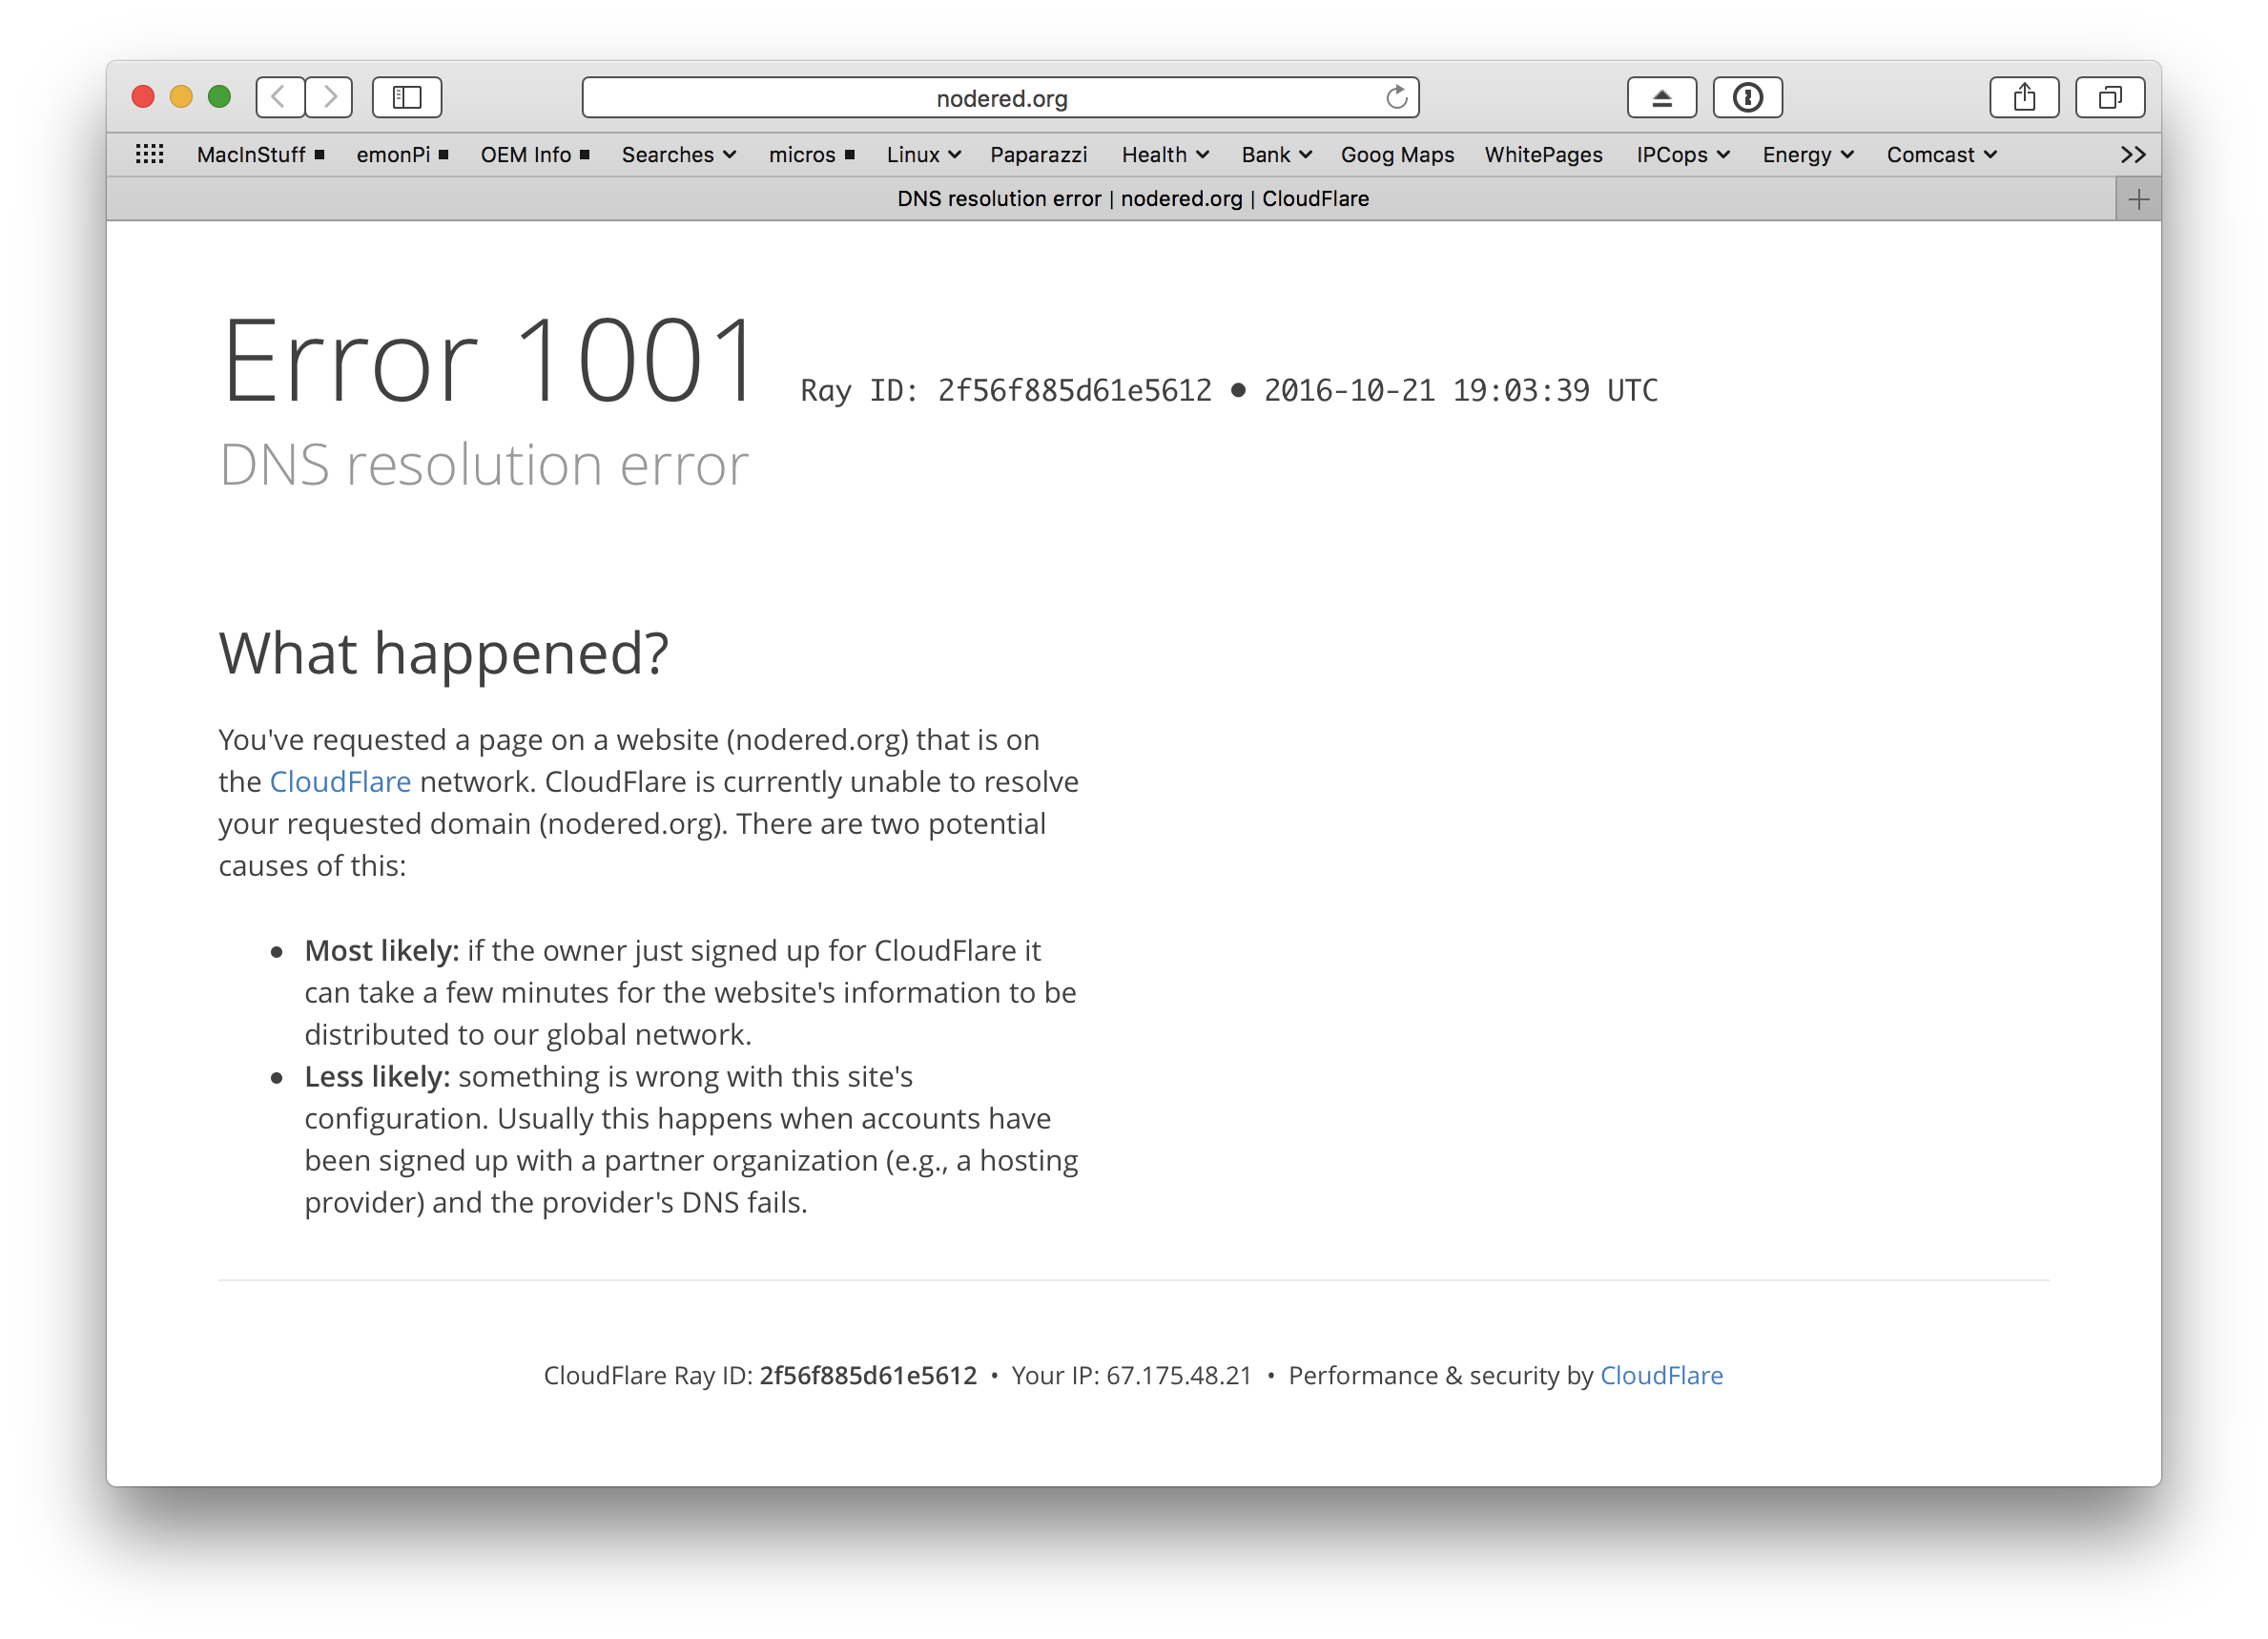 21 Oct 2016 - Cannot access node-red or github websites